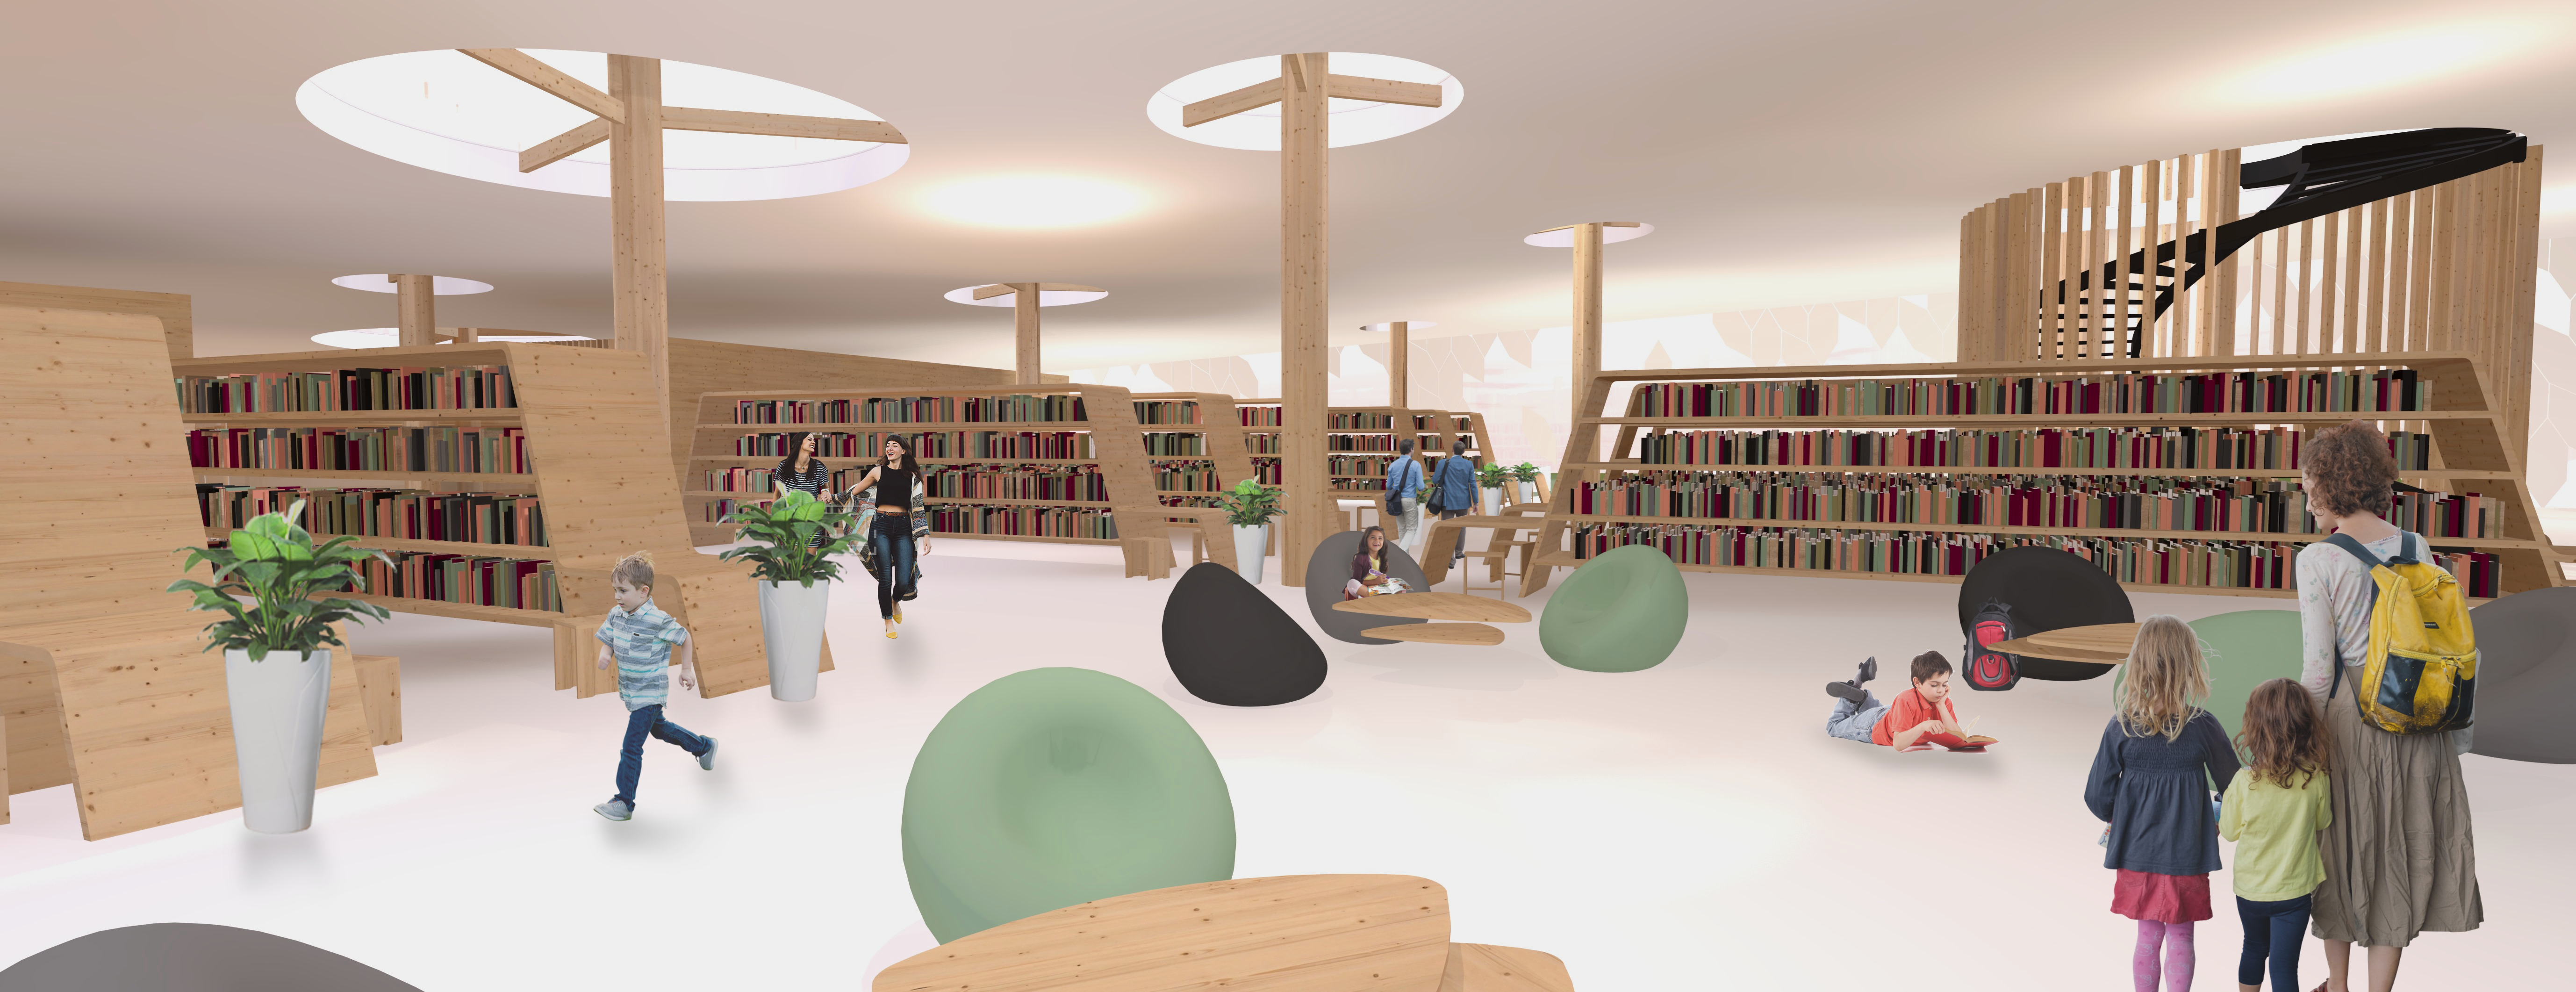 18 03 05 Losbates School Competition Library